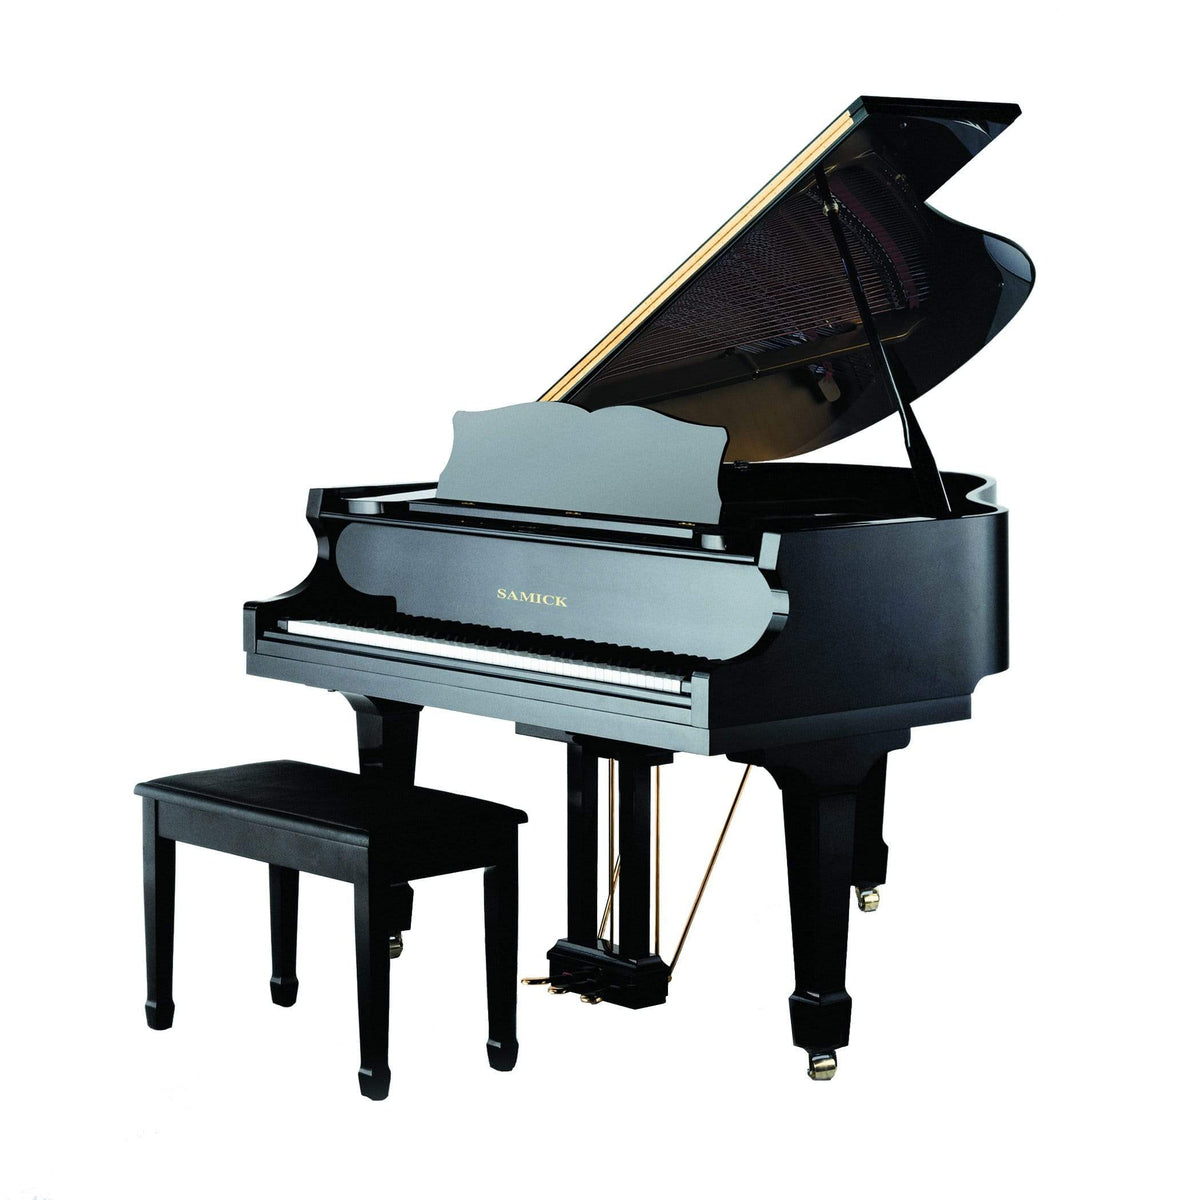 Samick SIG-48DEBHP Grand Piano - Ebony HP